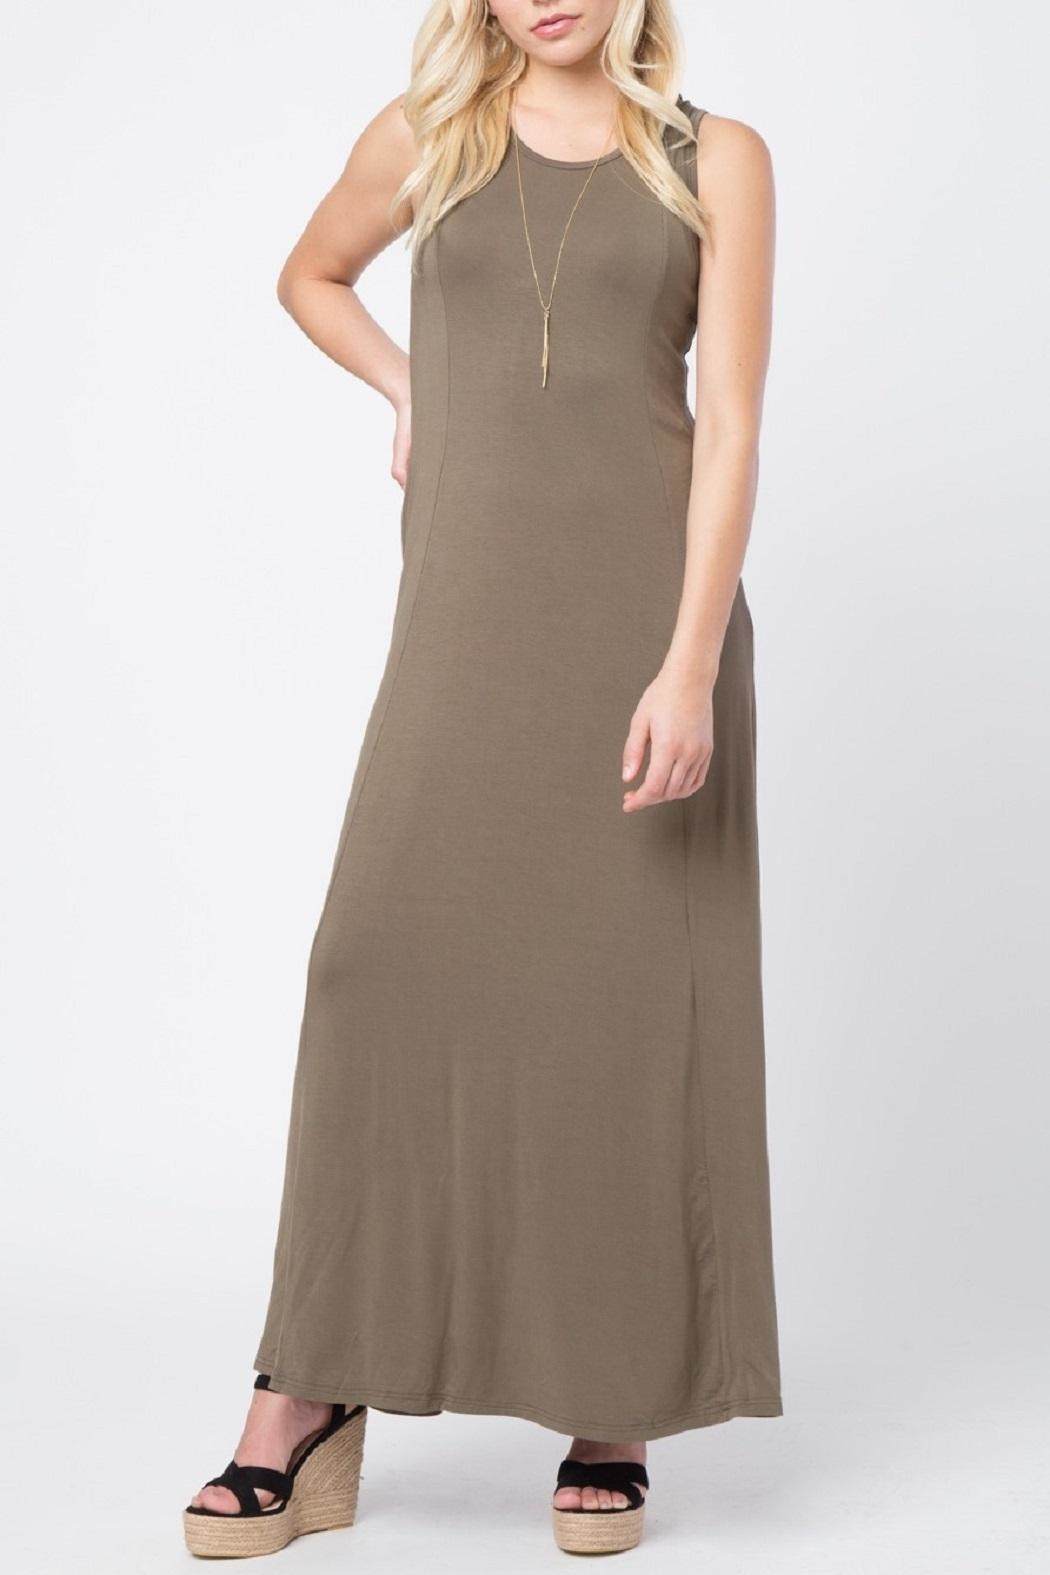 LoveRiche Relaxed Maxi Dress - Main Image